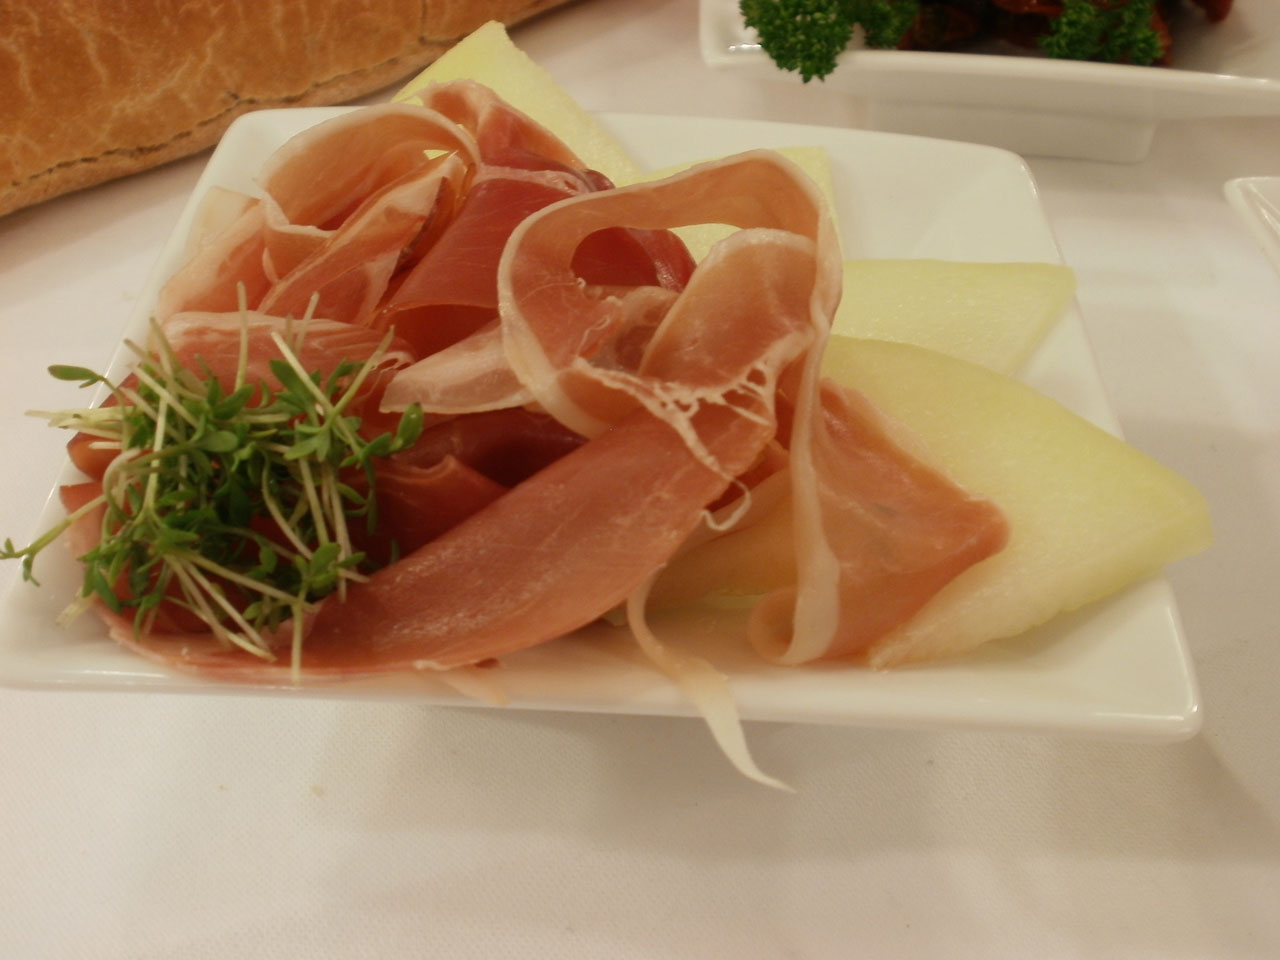 Flying Buffet: Honigmelone mit Parmaschinken